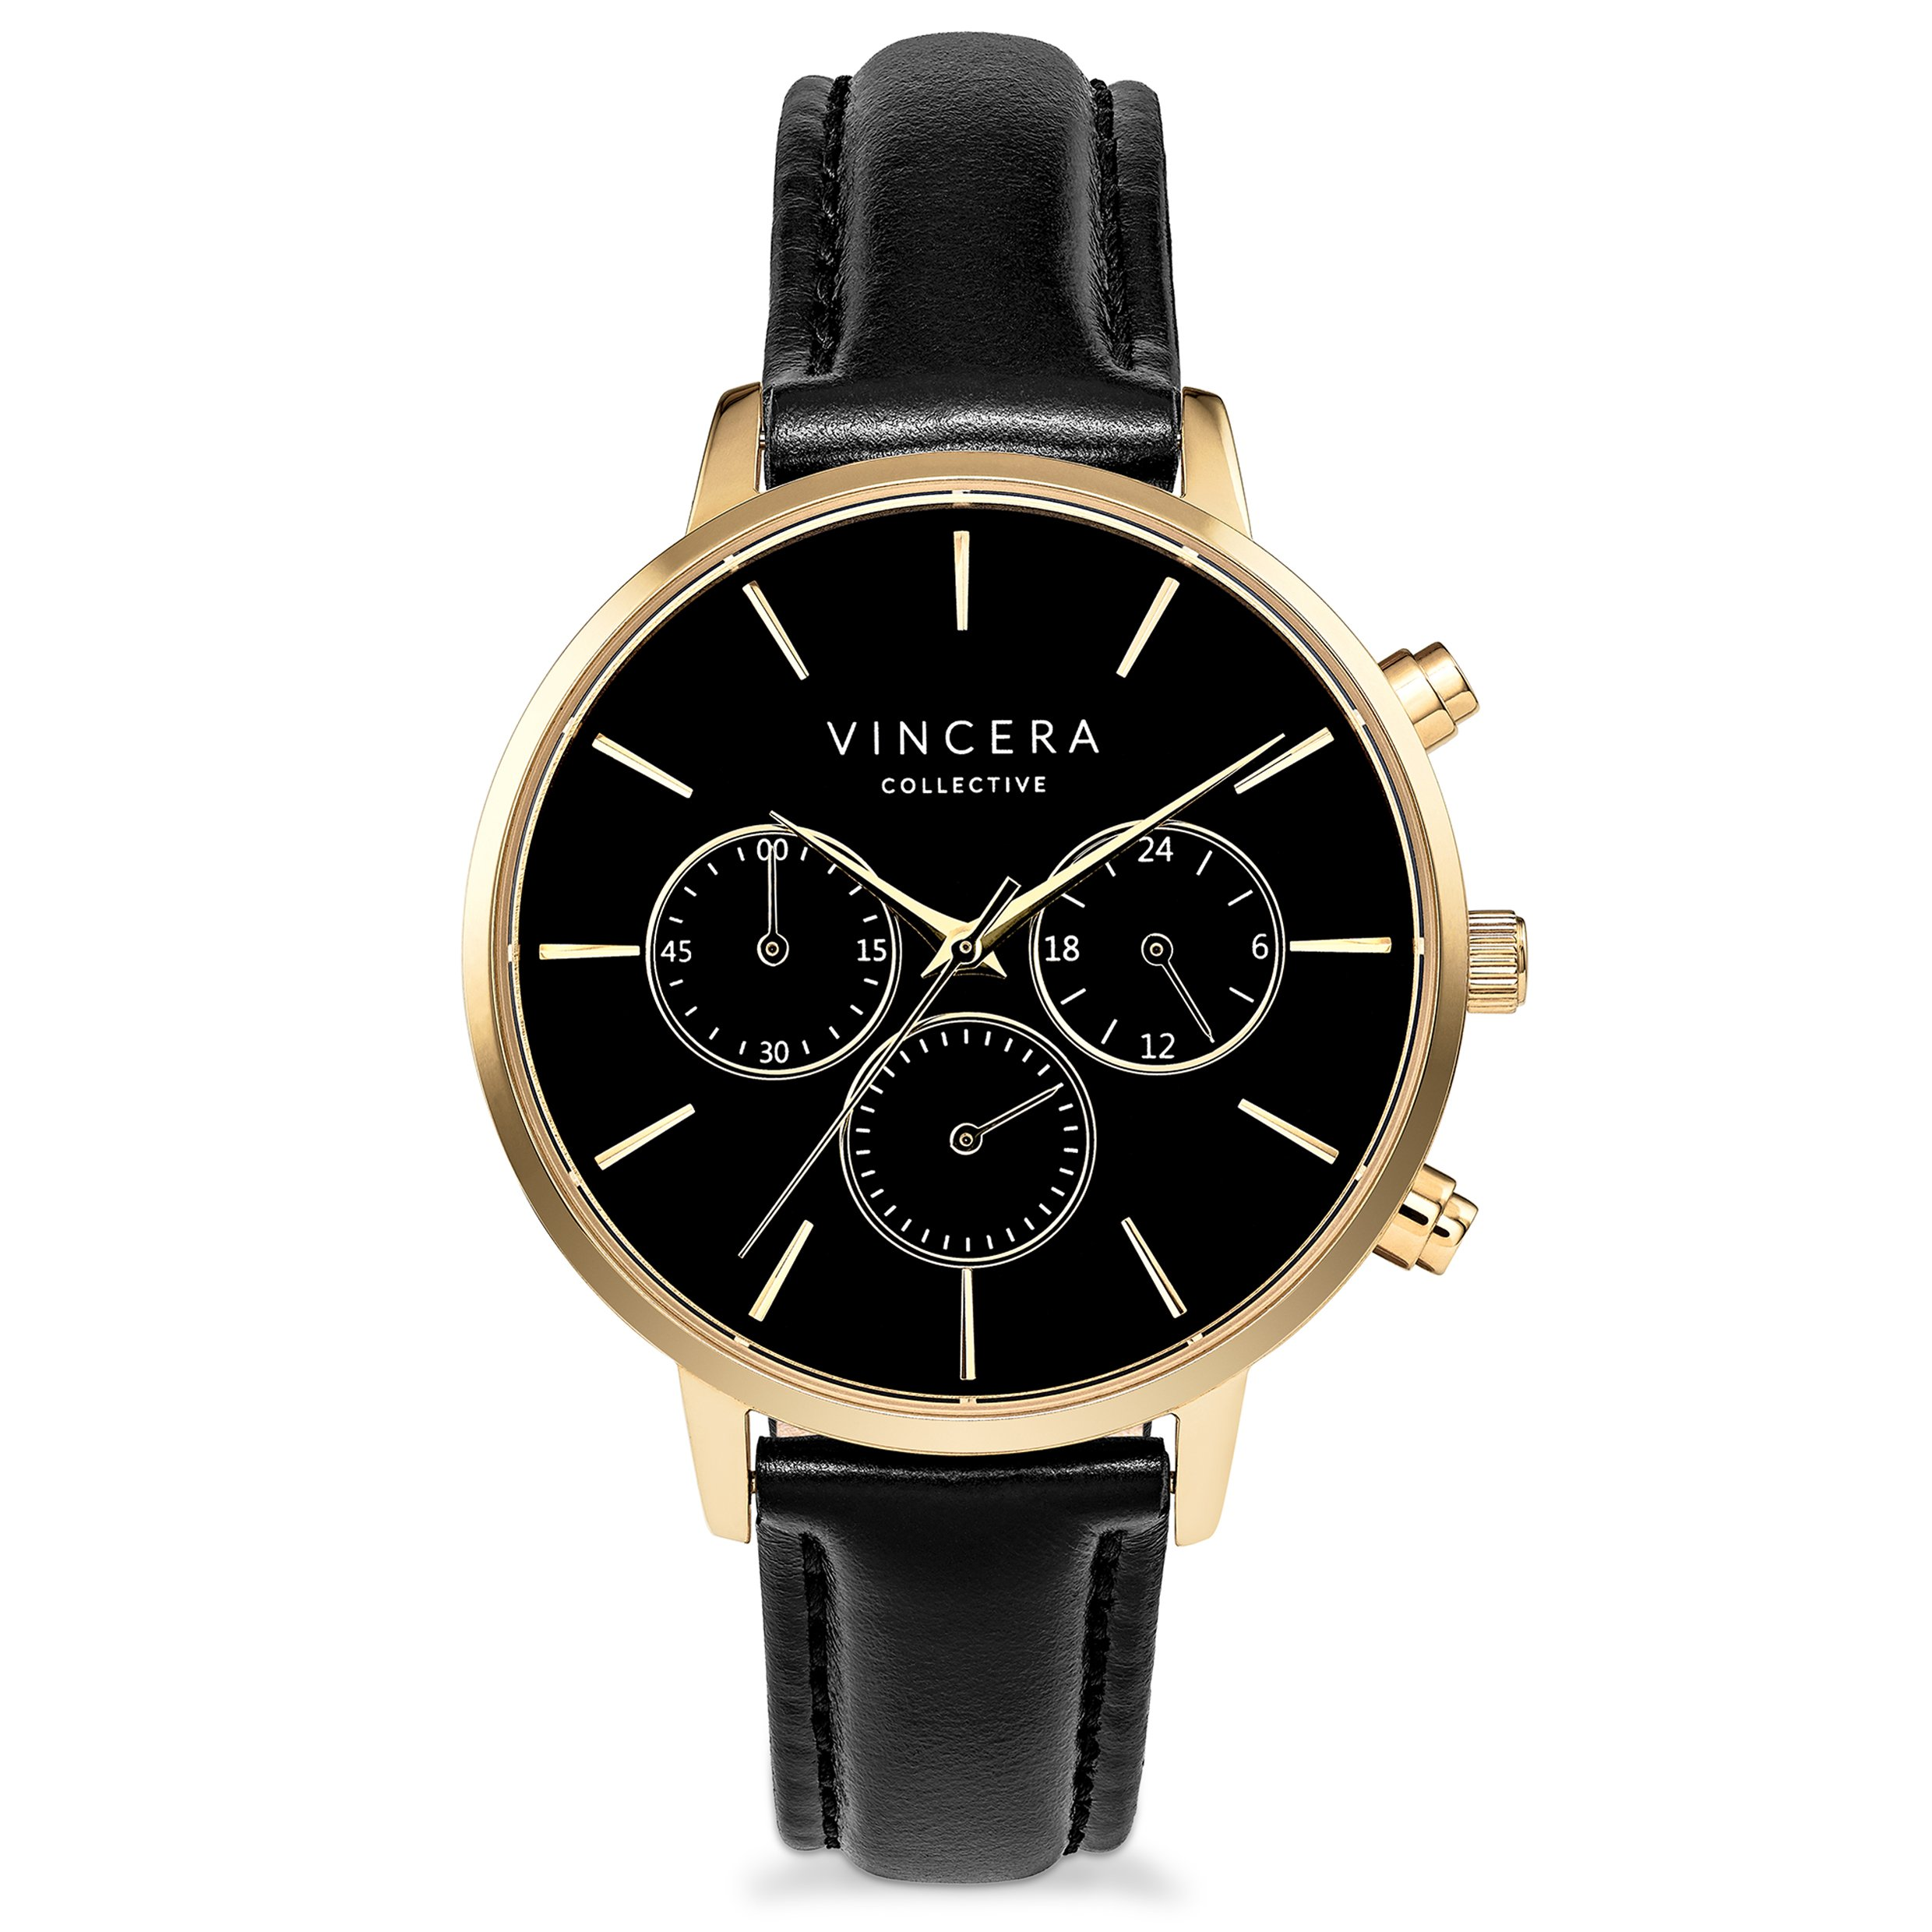 Vincero Luxury Women's Kleio Wrist Watch - Yellow Gold + Black Dial with a Black Leather Watch Band - 38mm Chronograph Watch - Japanese Quartz Movement by Vincero